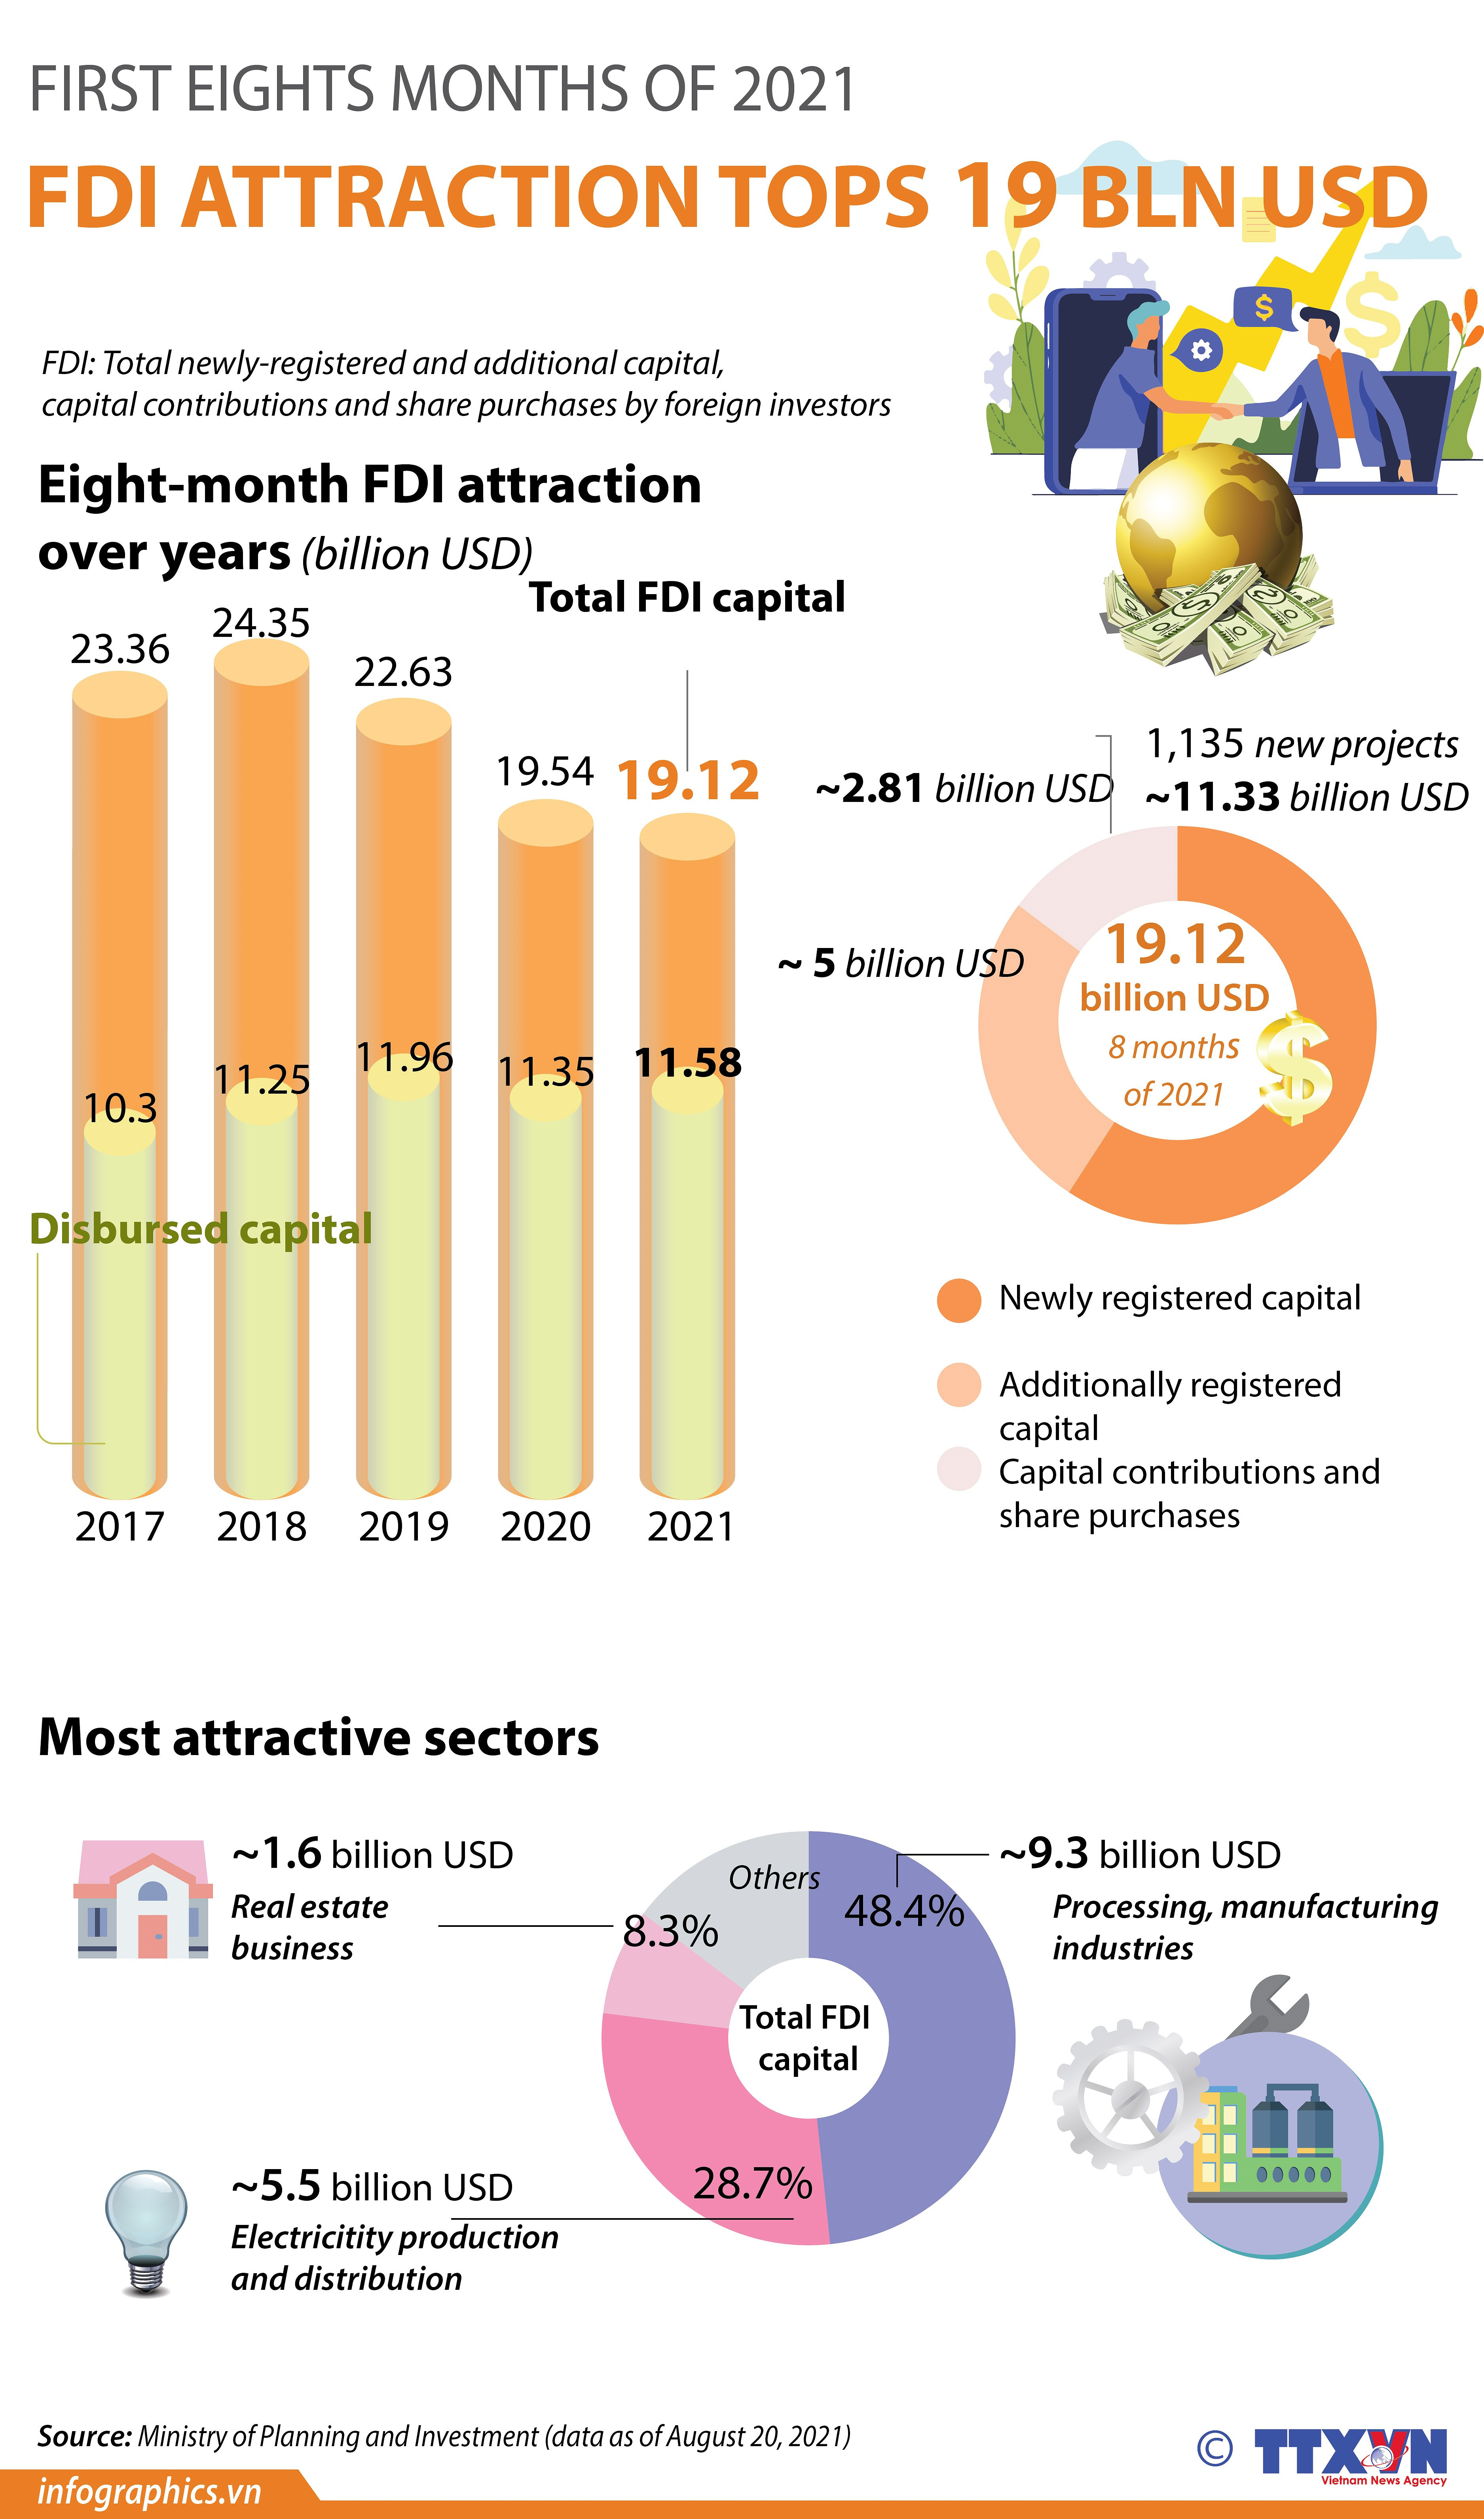 FDI attraction in eight months tops 19 billion USD hinh anh 1